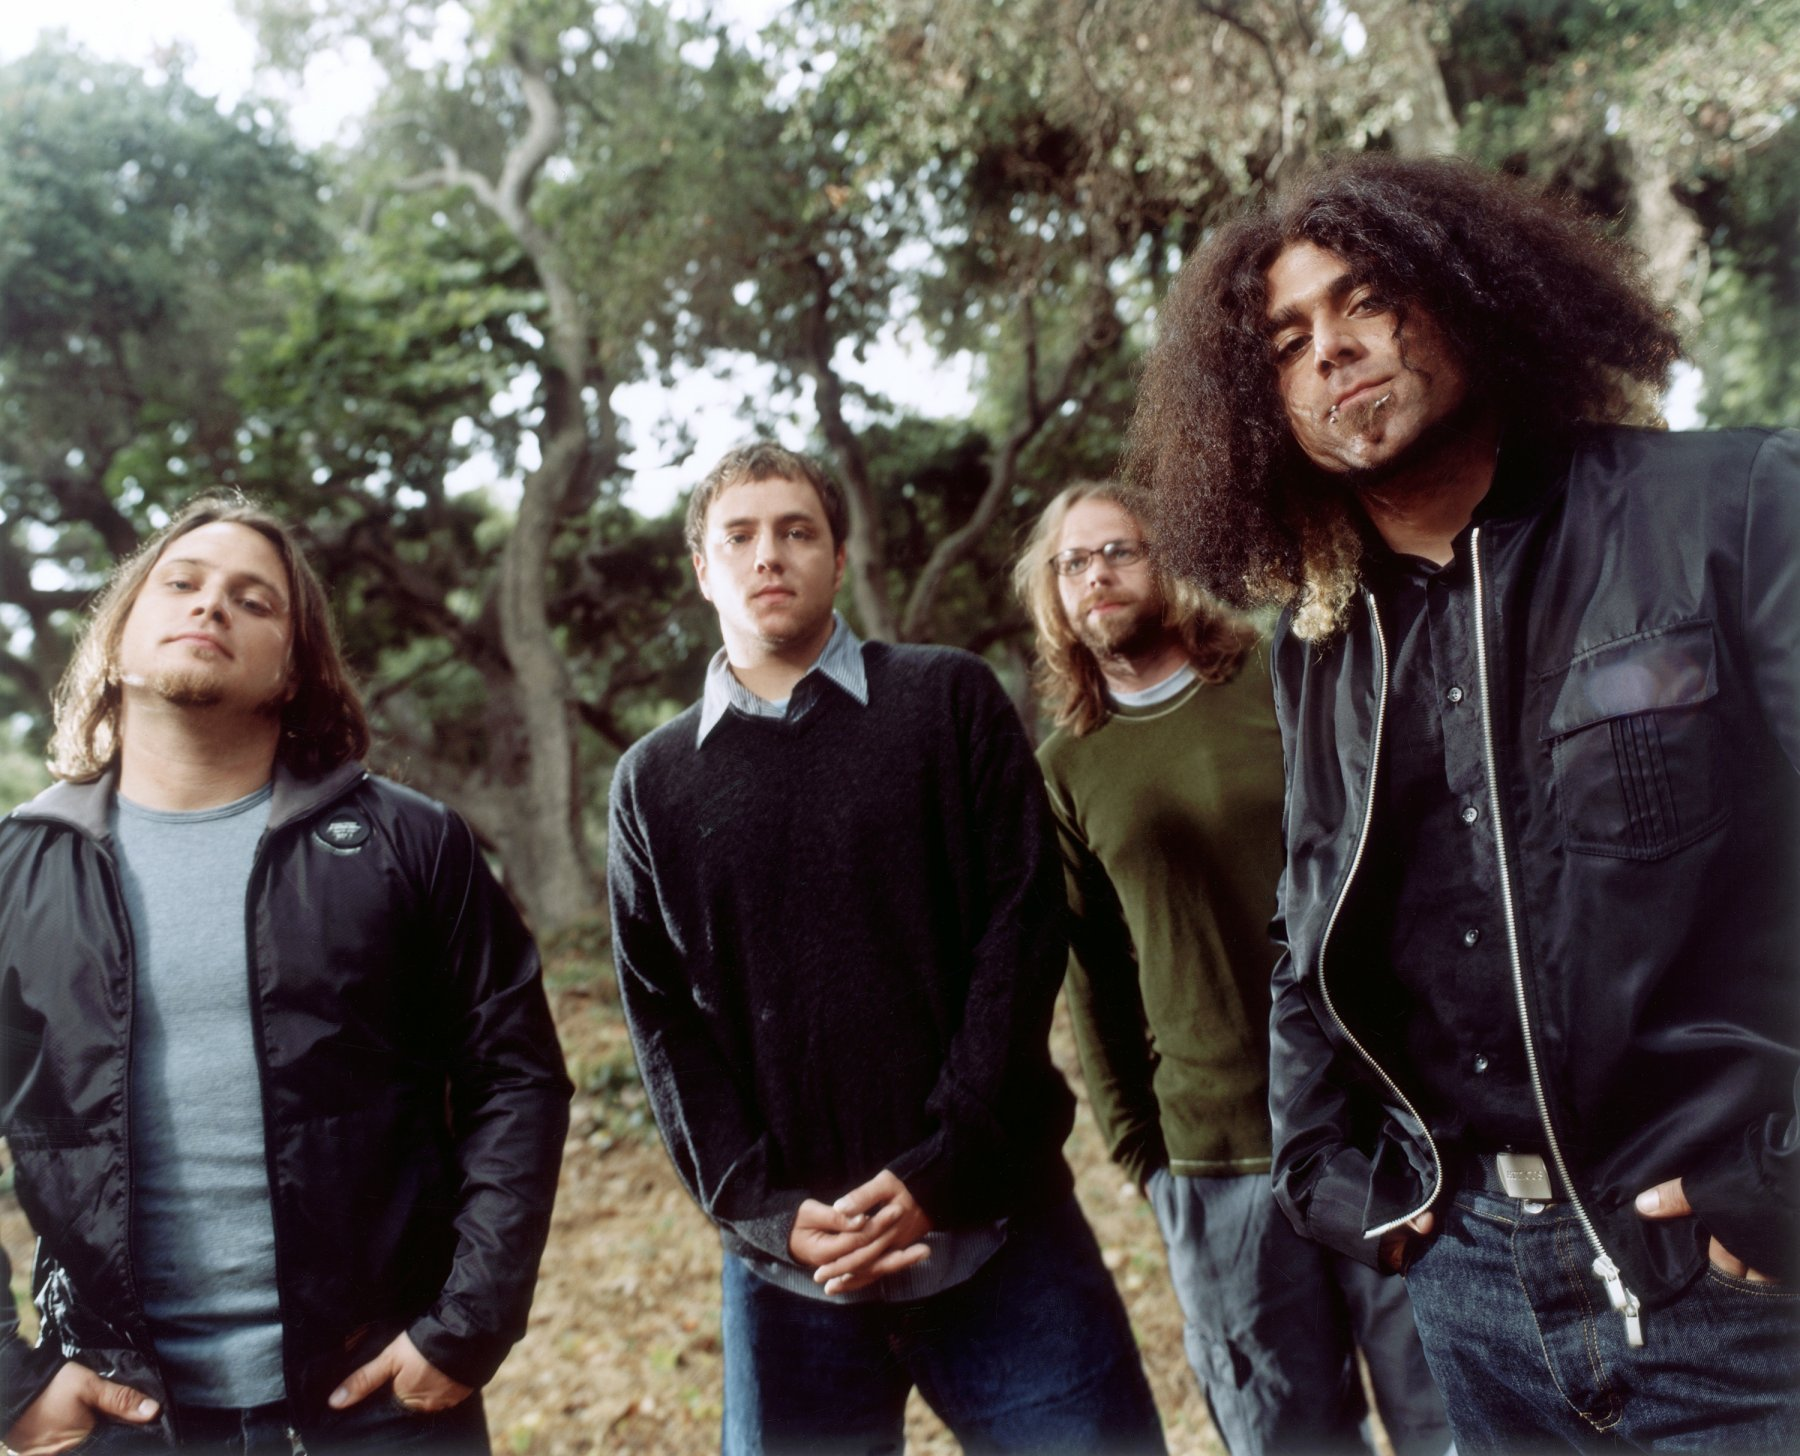 Coheed and cambria the movie